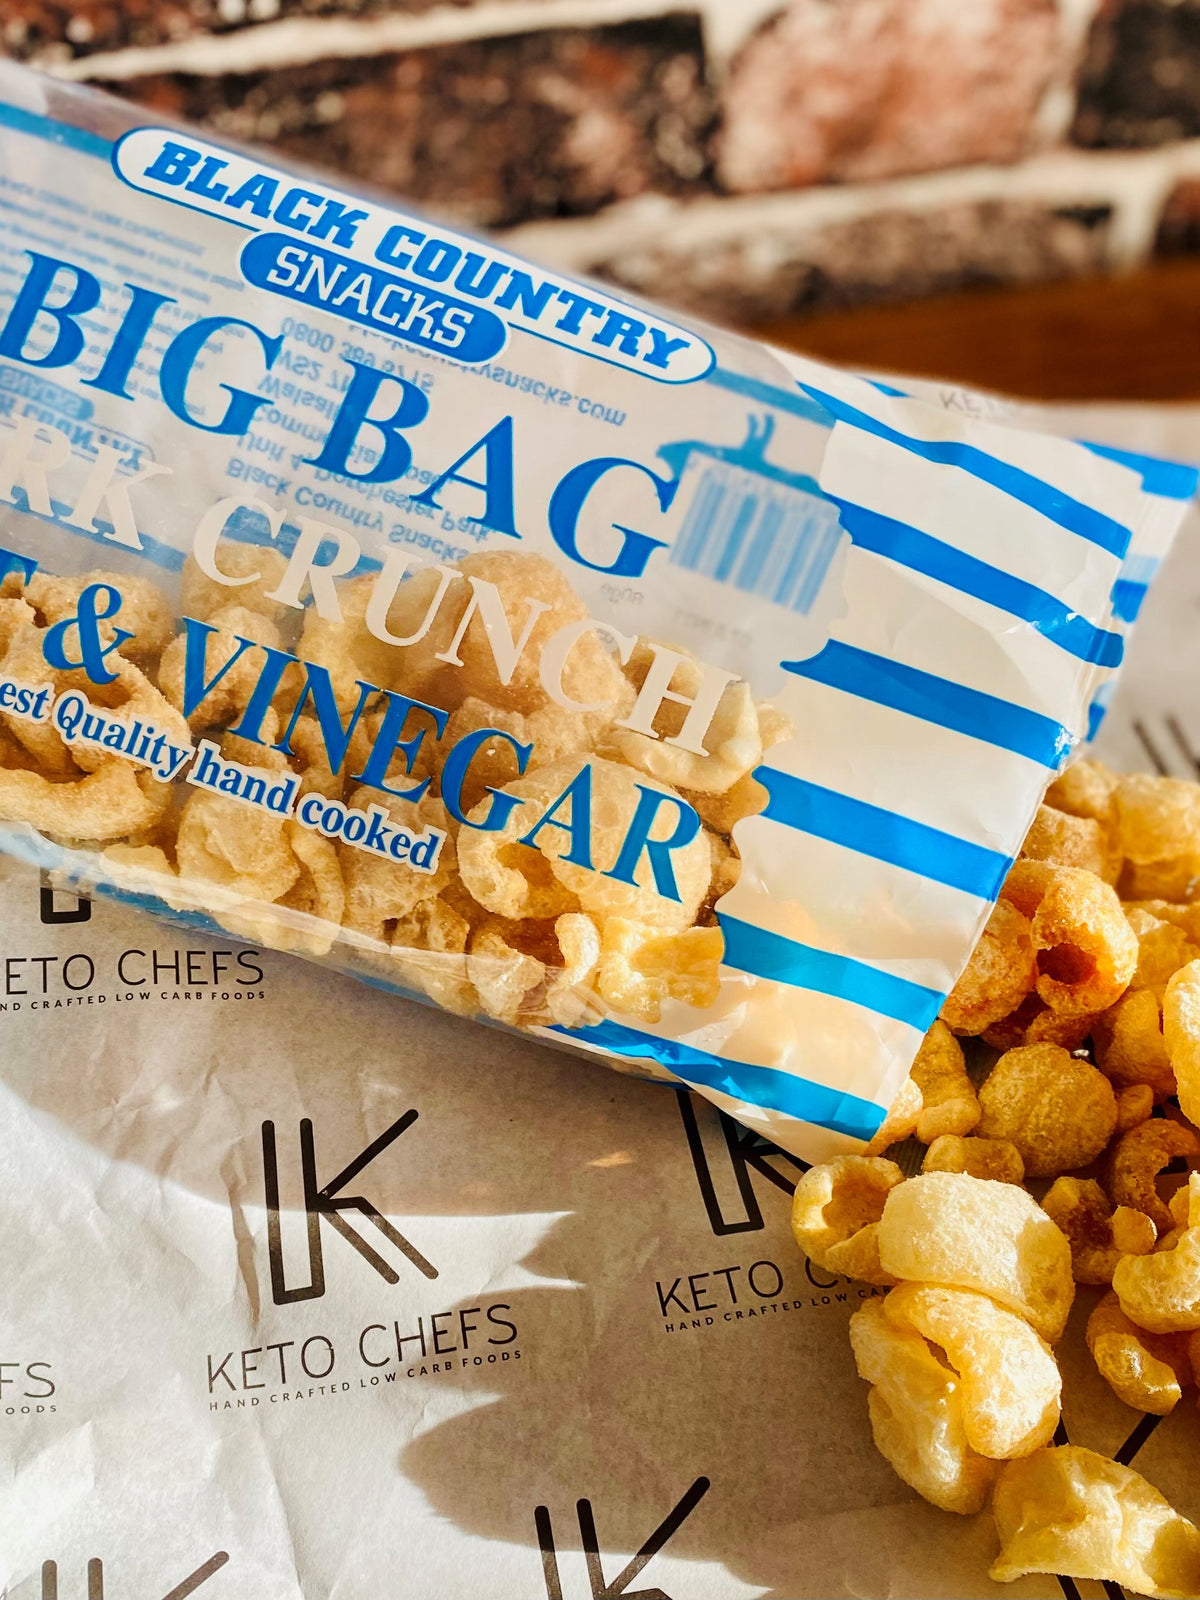 Black Country Salt & Vinegar Pork Crunch Big Bag 80g